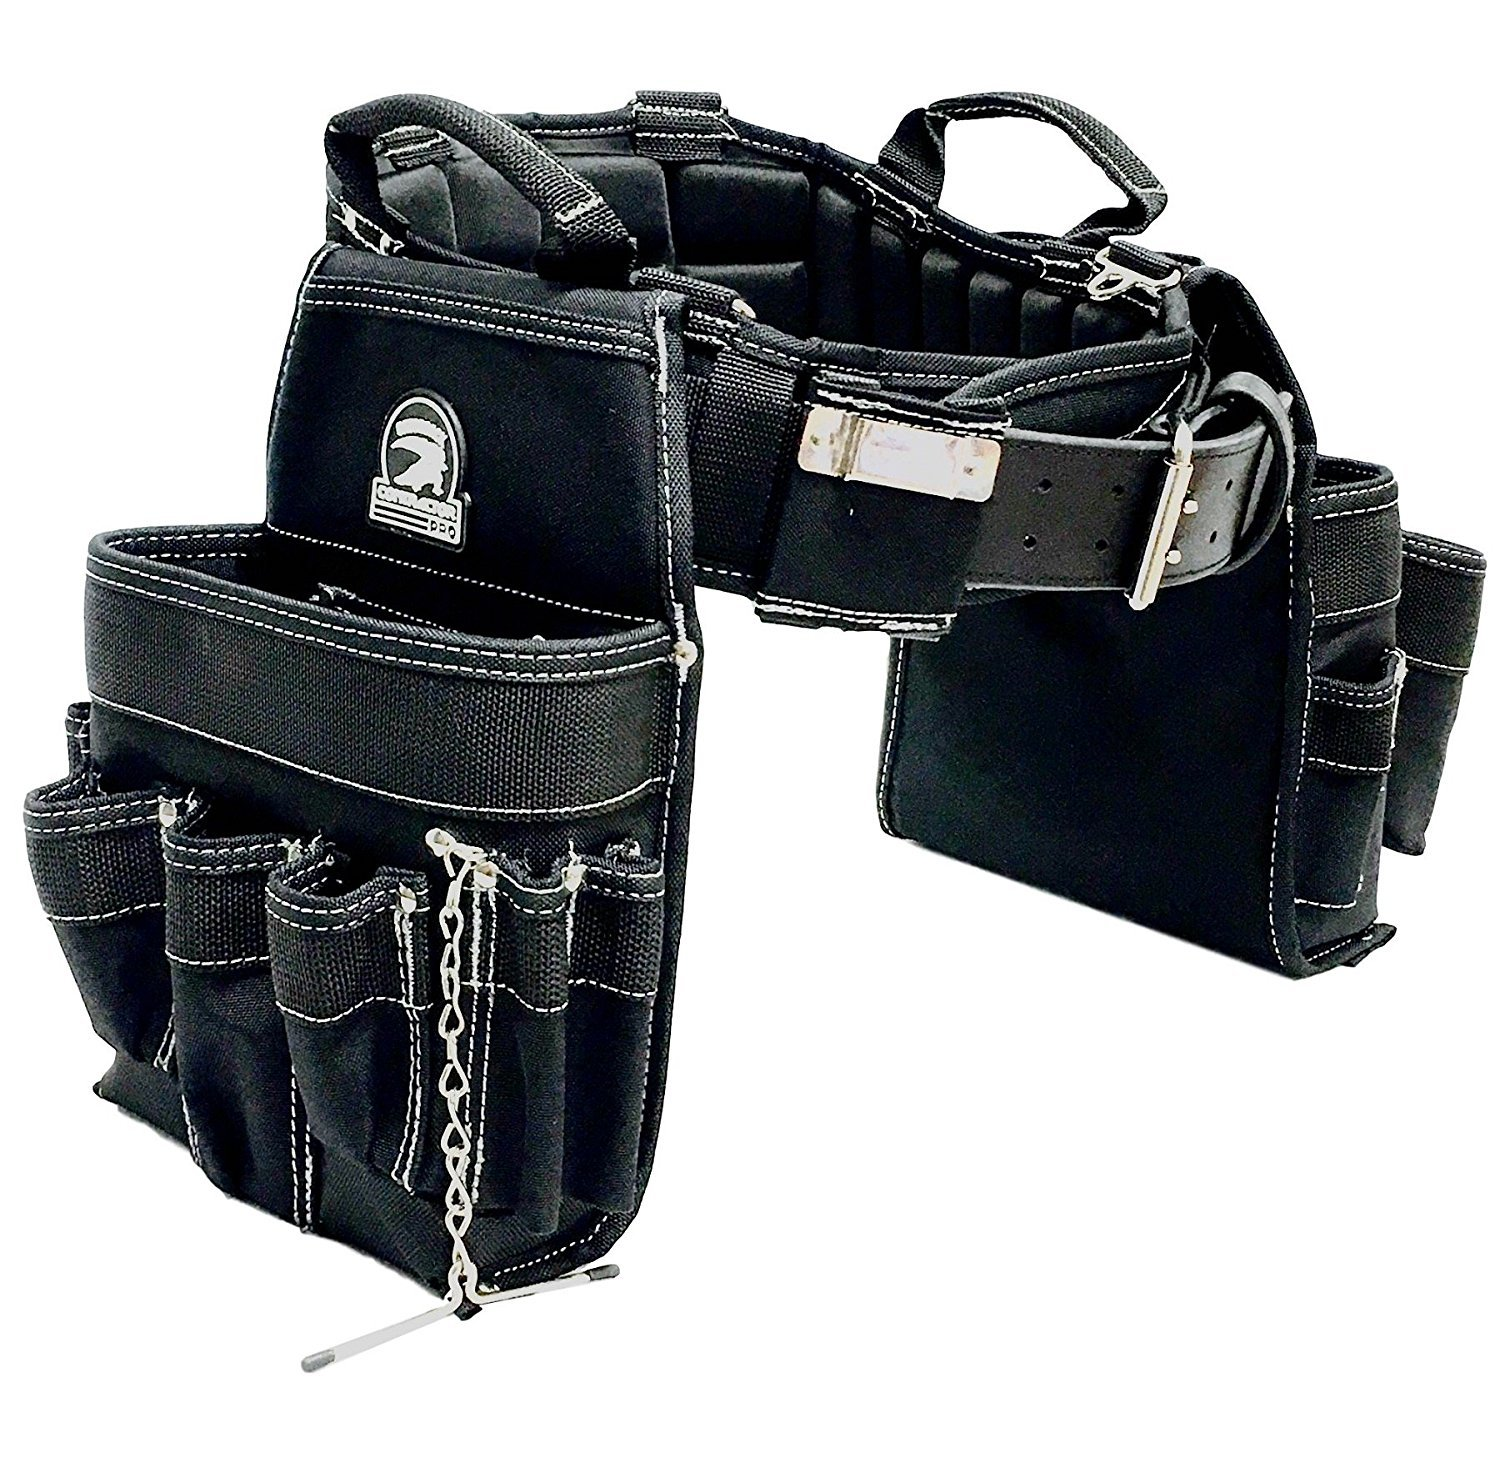 TradeGear Medium Electrician Combo Belt & Bags, Maximum Comfort, Durable & Heavy-Duty (31-34'') Partnered with Gatorback Contractor Pro by TradeGear